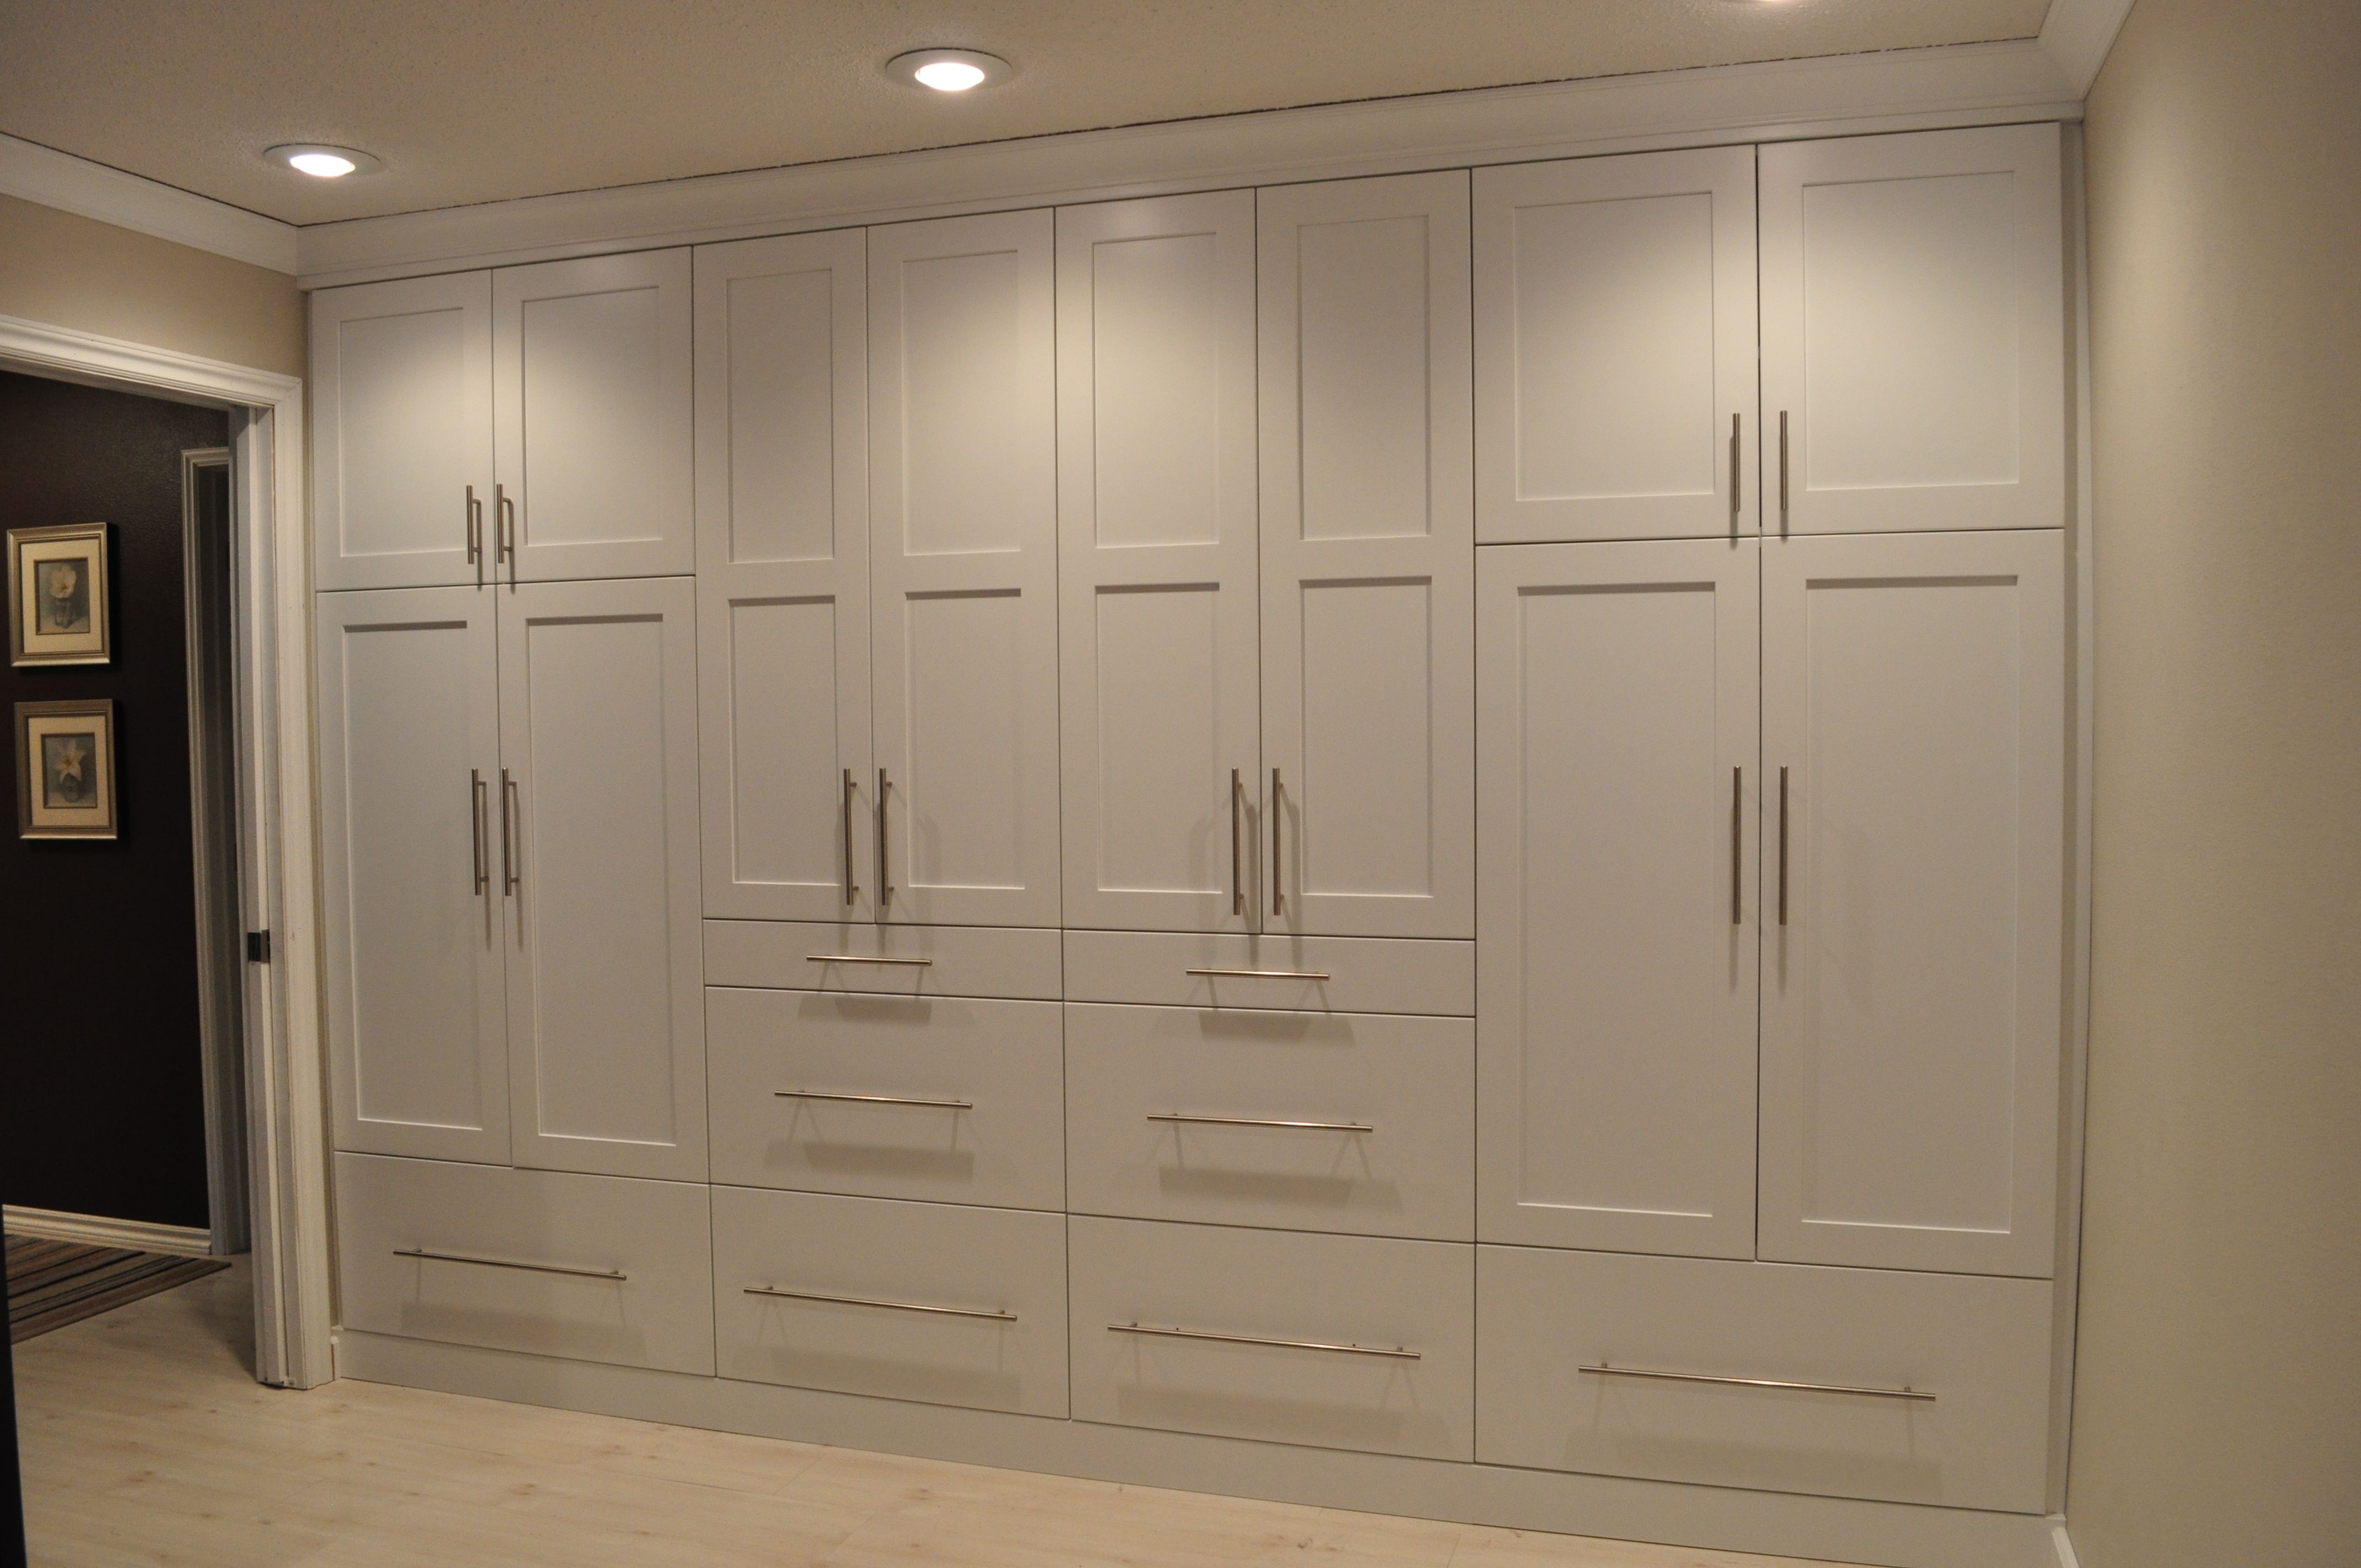 Columbia Cabinets in iceberg white Built in closet system Design